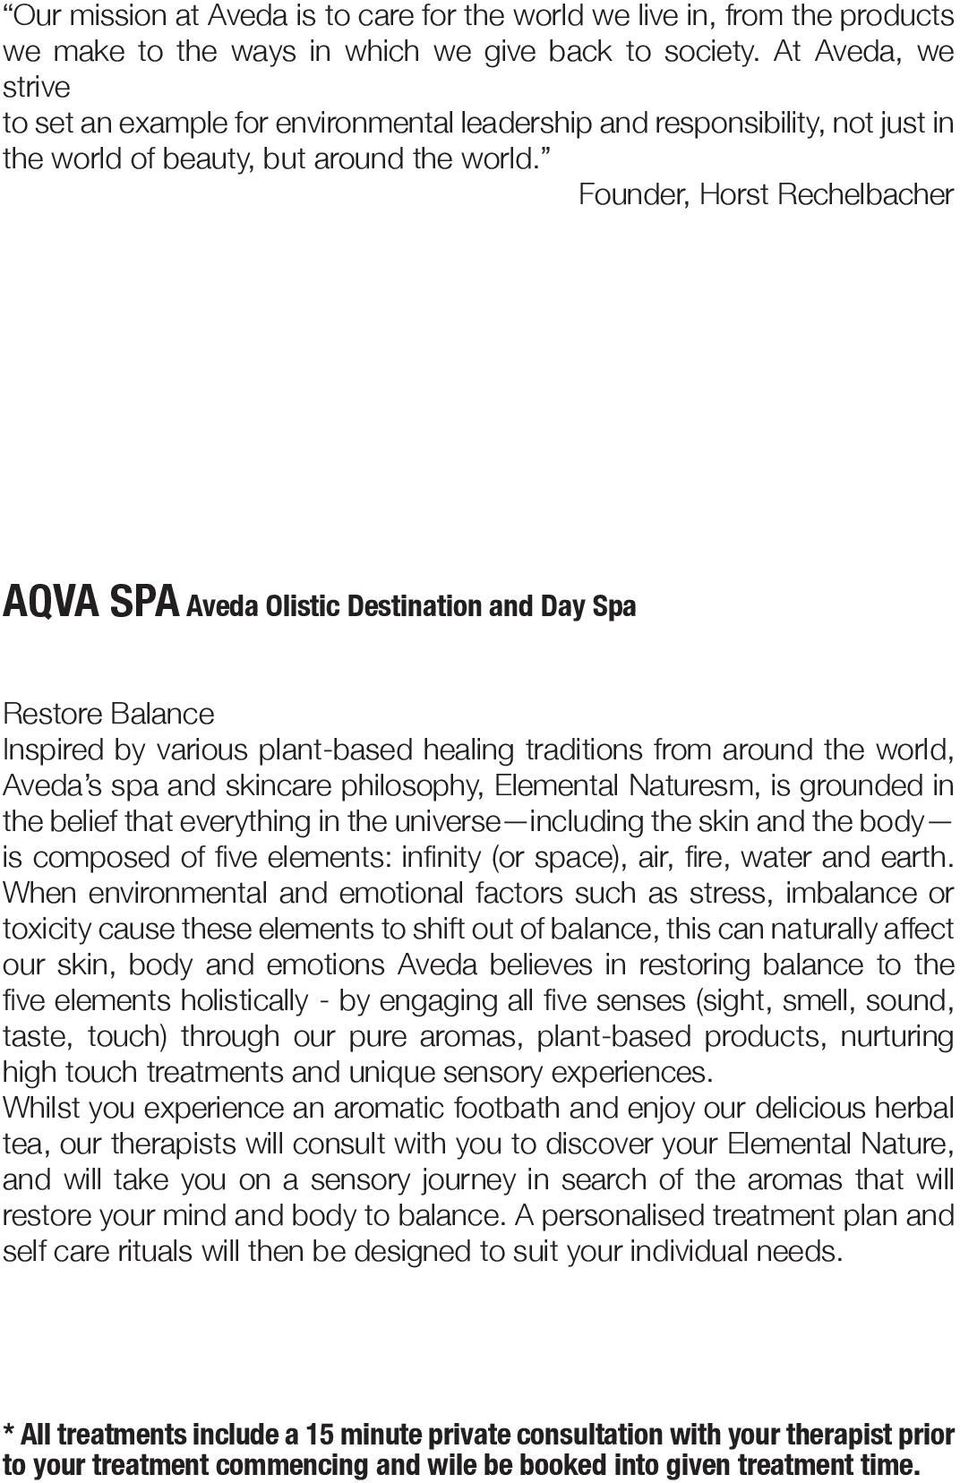 Founder, Horst Rechelbacher AQVA SPA Aveda Olistic Destination and Day Spa Restore Balance Inspired by various plant-based healing traditions from around the world, Aveda s spa and skincare